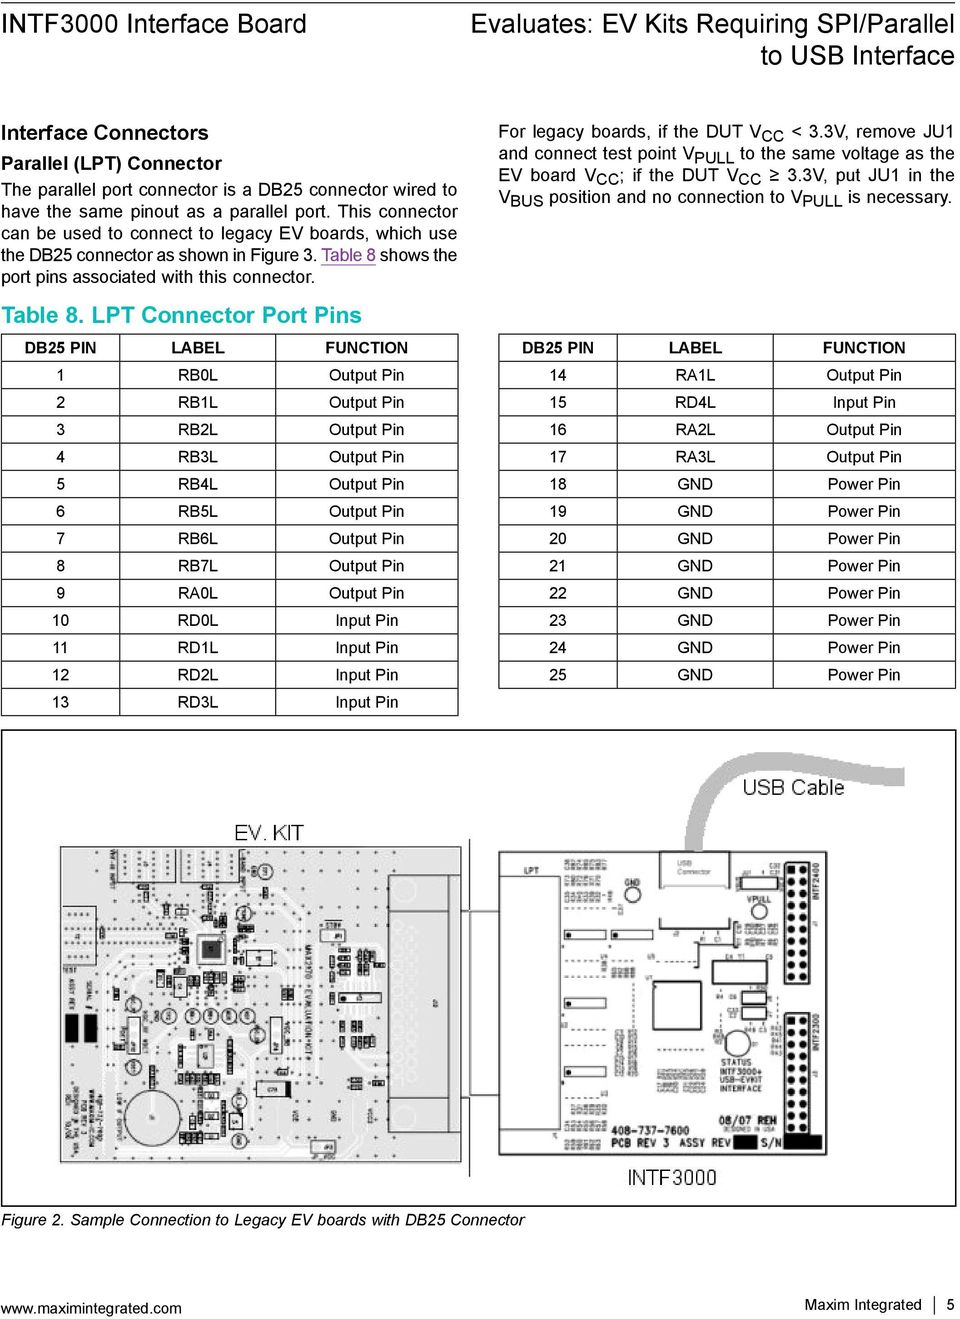 Evaluates Ev Kits Requiring Spi Parallel To Usb Interface The Figure Shows Connections For Db25 Connectors Use Table 8 Port Pins Associated With This Connector